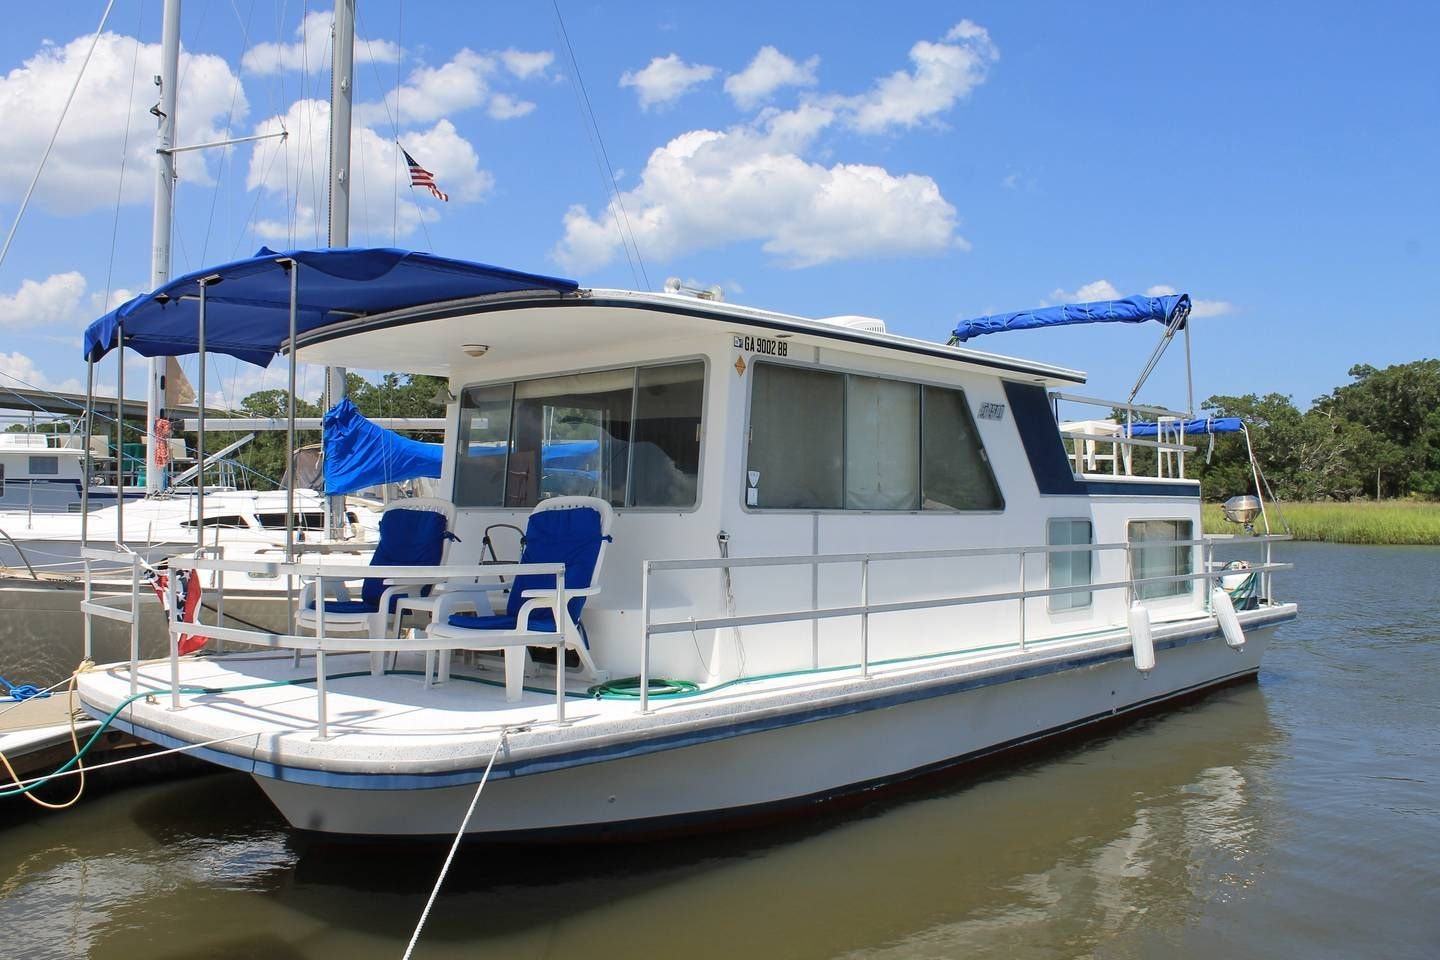 Beach shack boats for rent in jekyll island